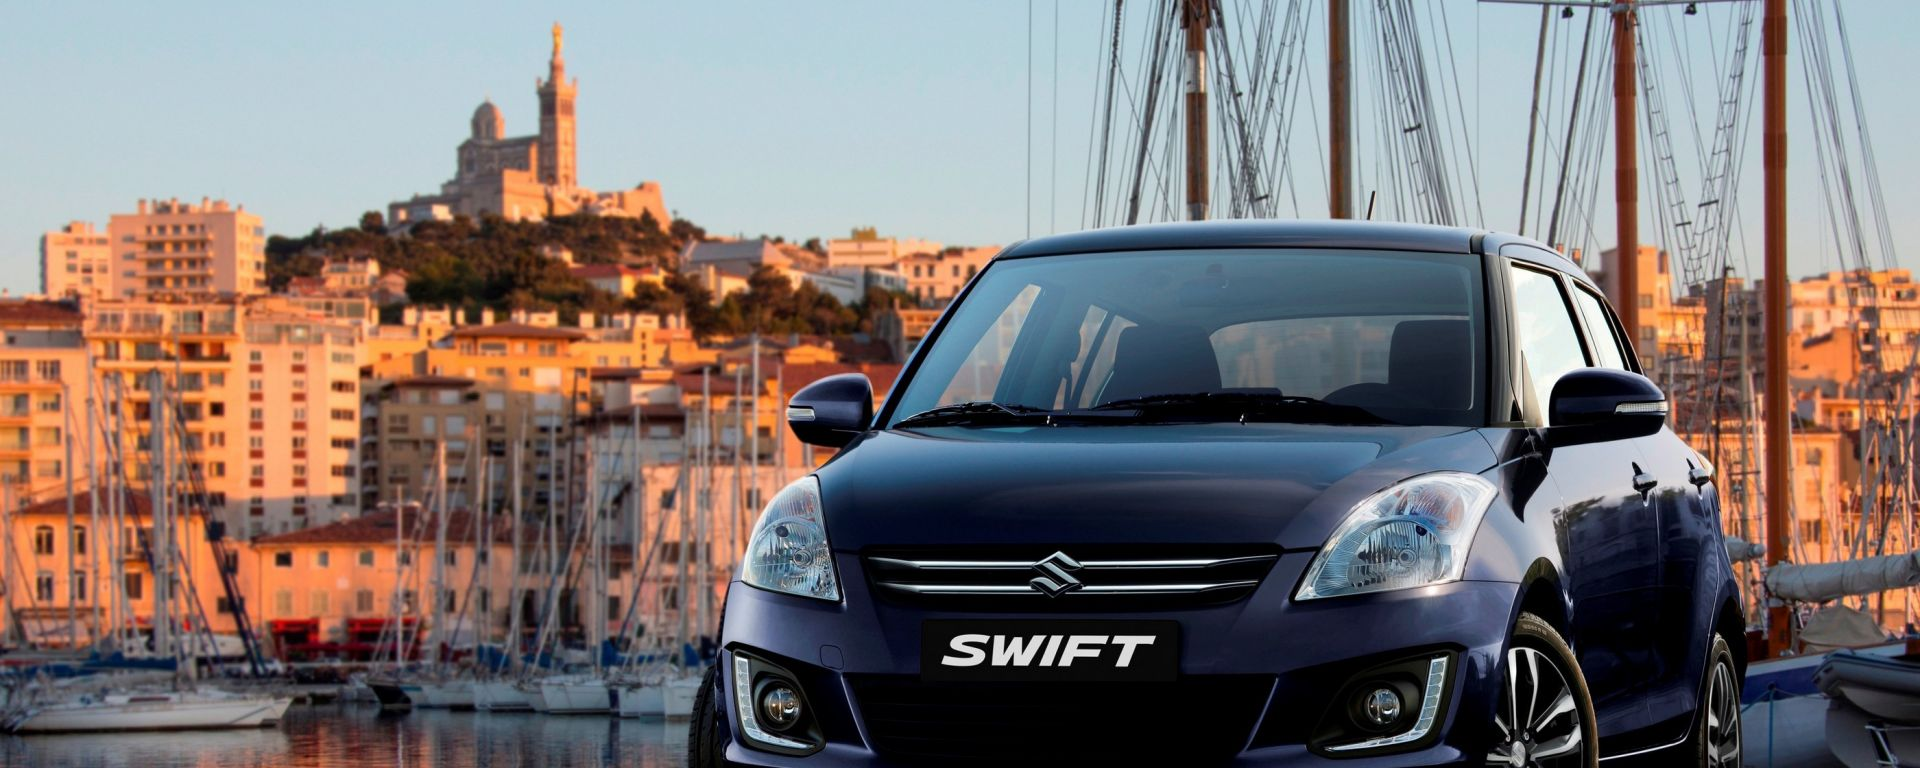 Suzuki Swift POSH